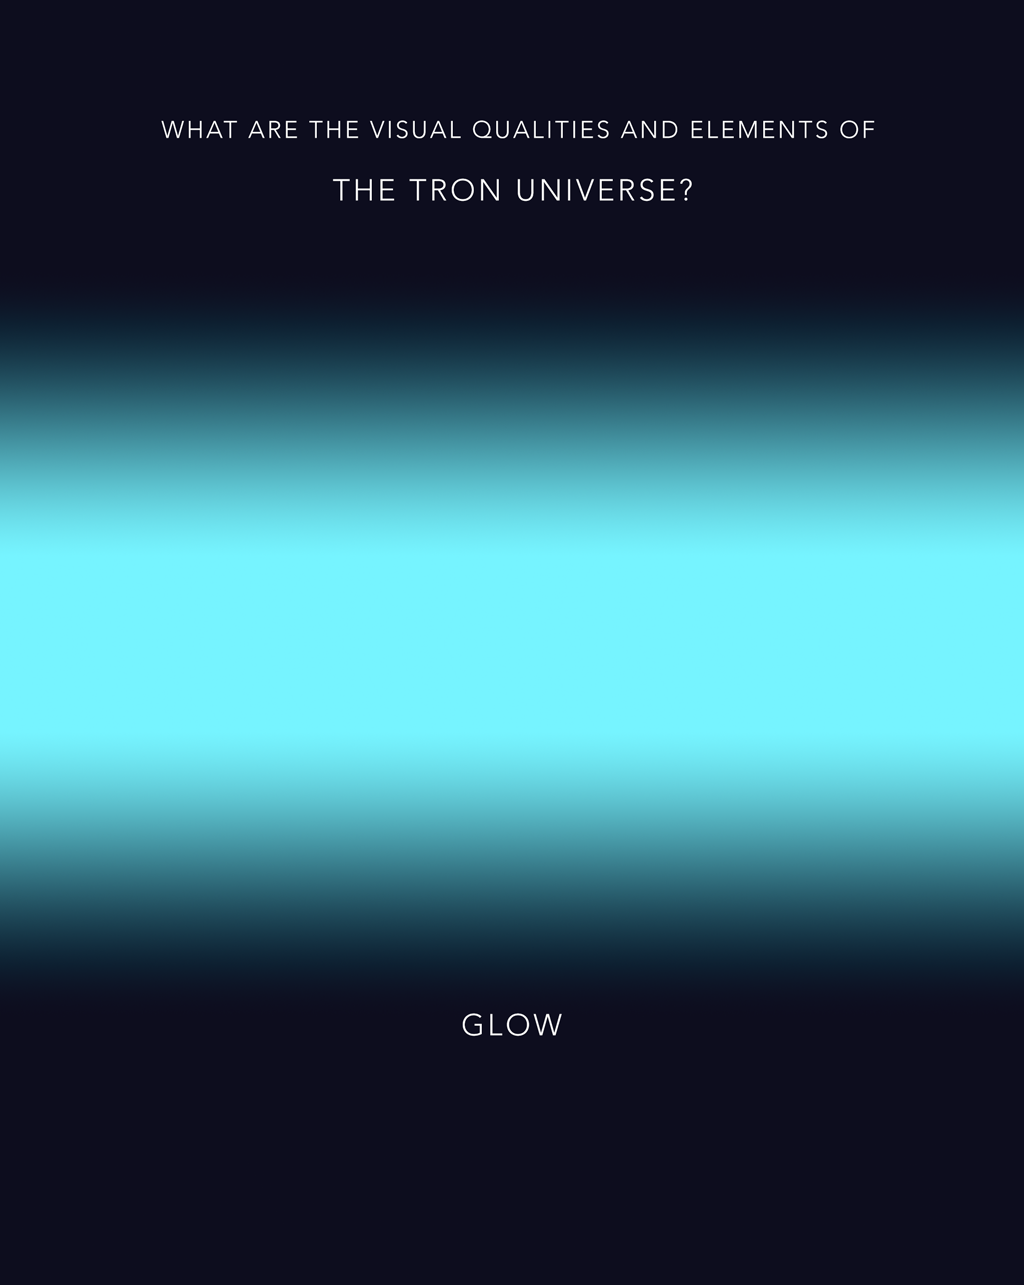 What are the visual qualities and elements of the Tron Universe? Number one: Glow